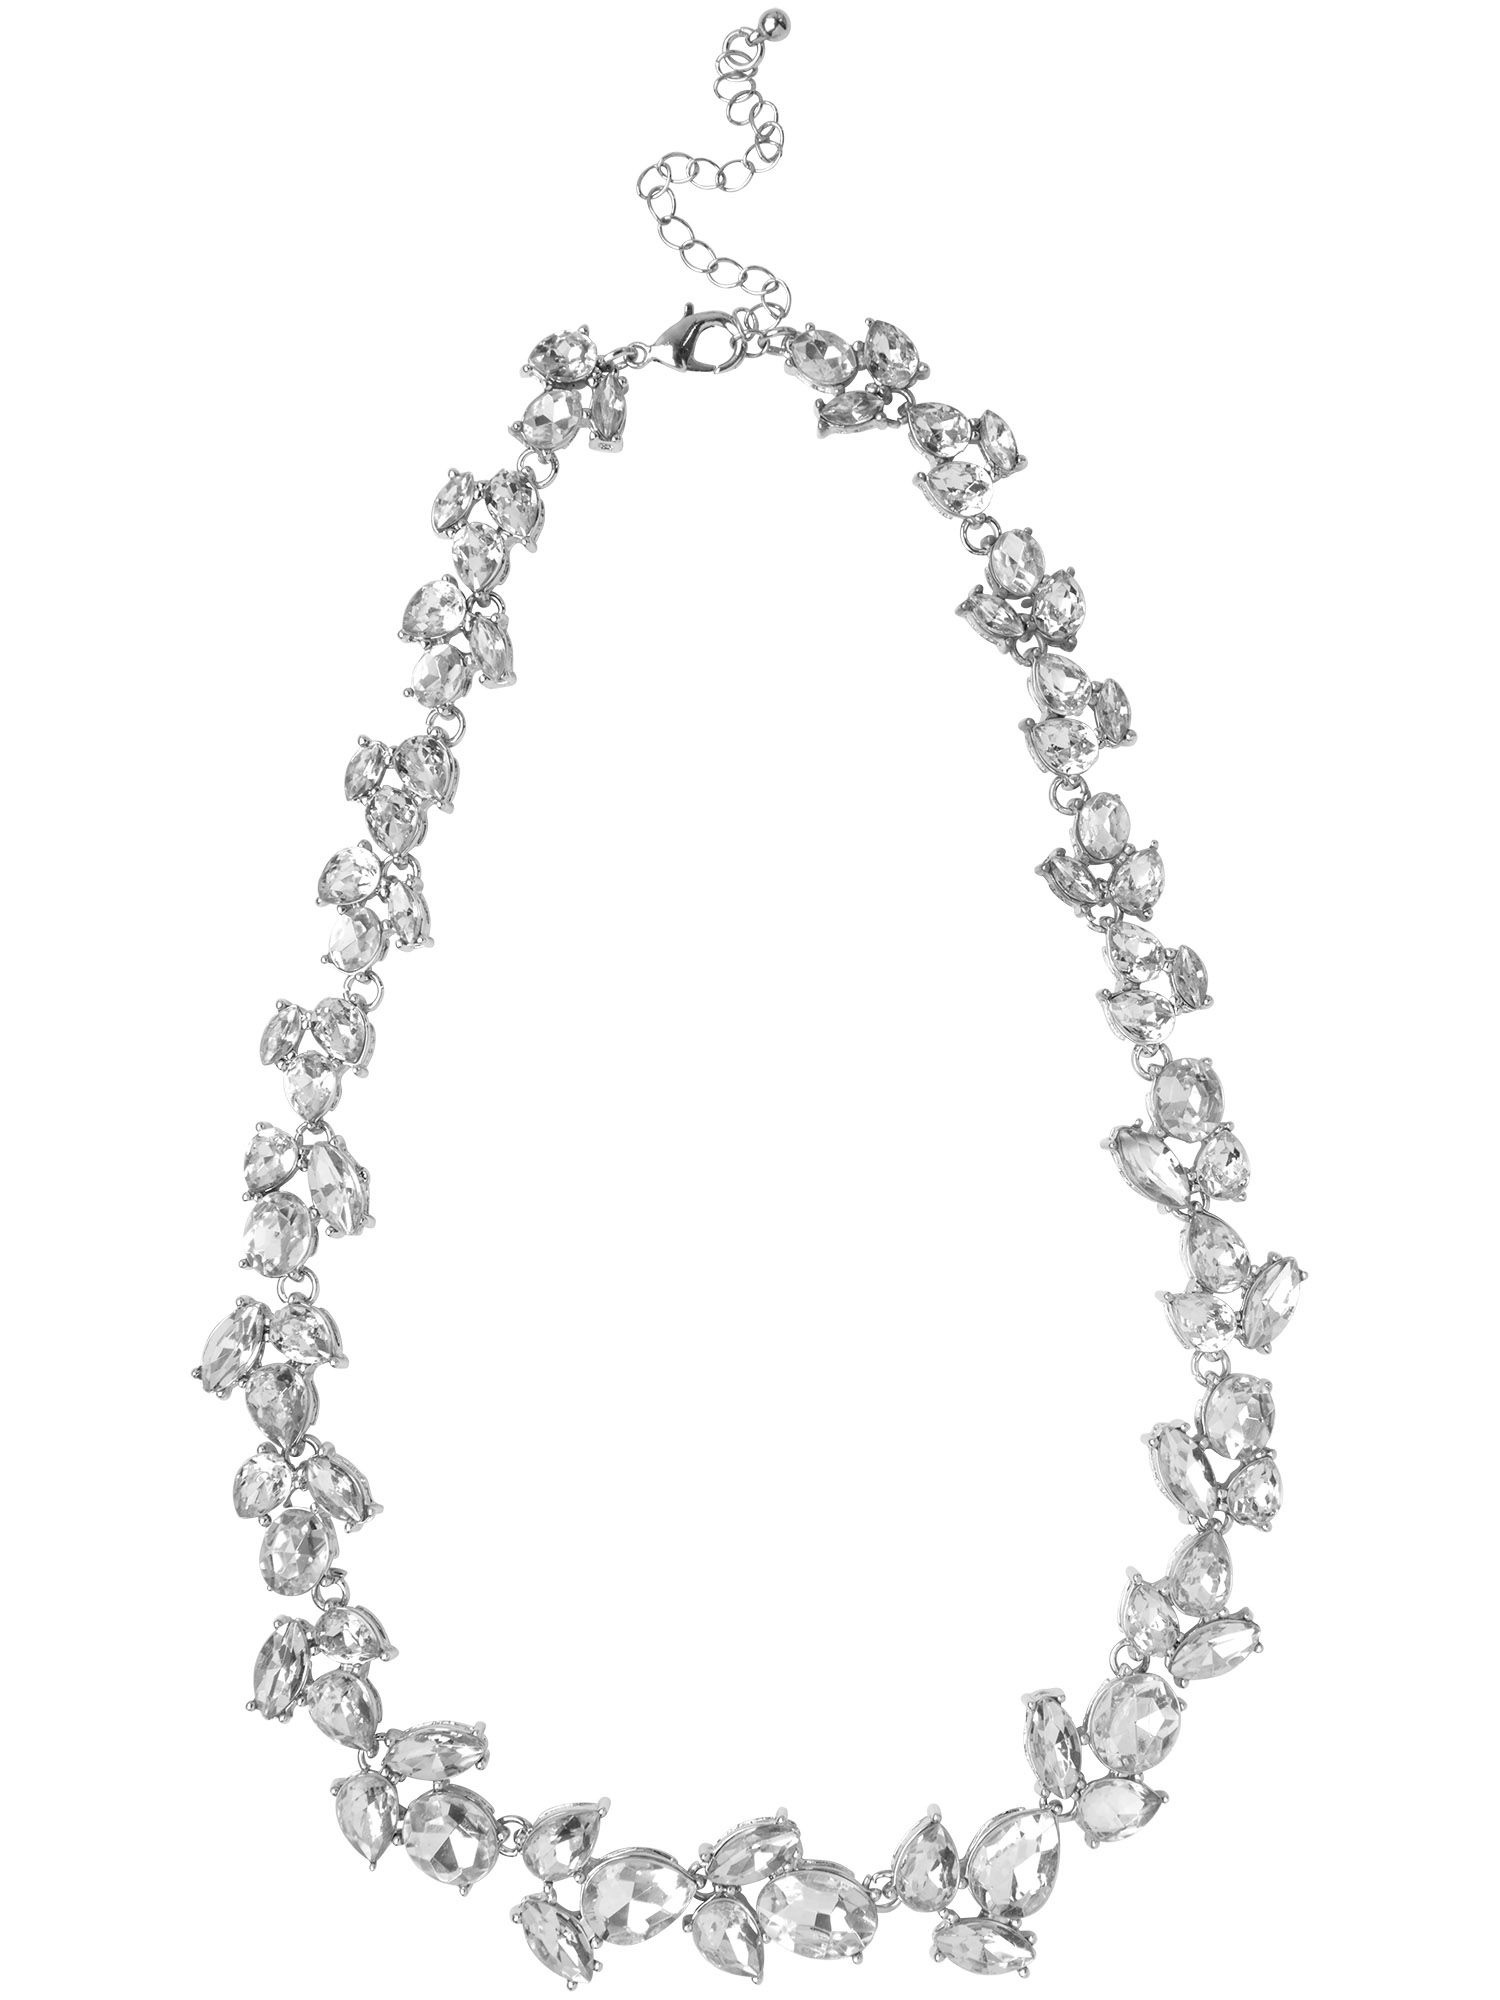 Rachel crystal necklace